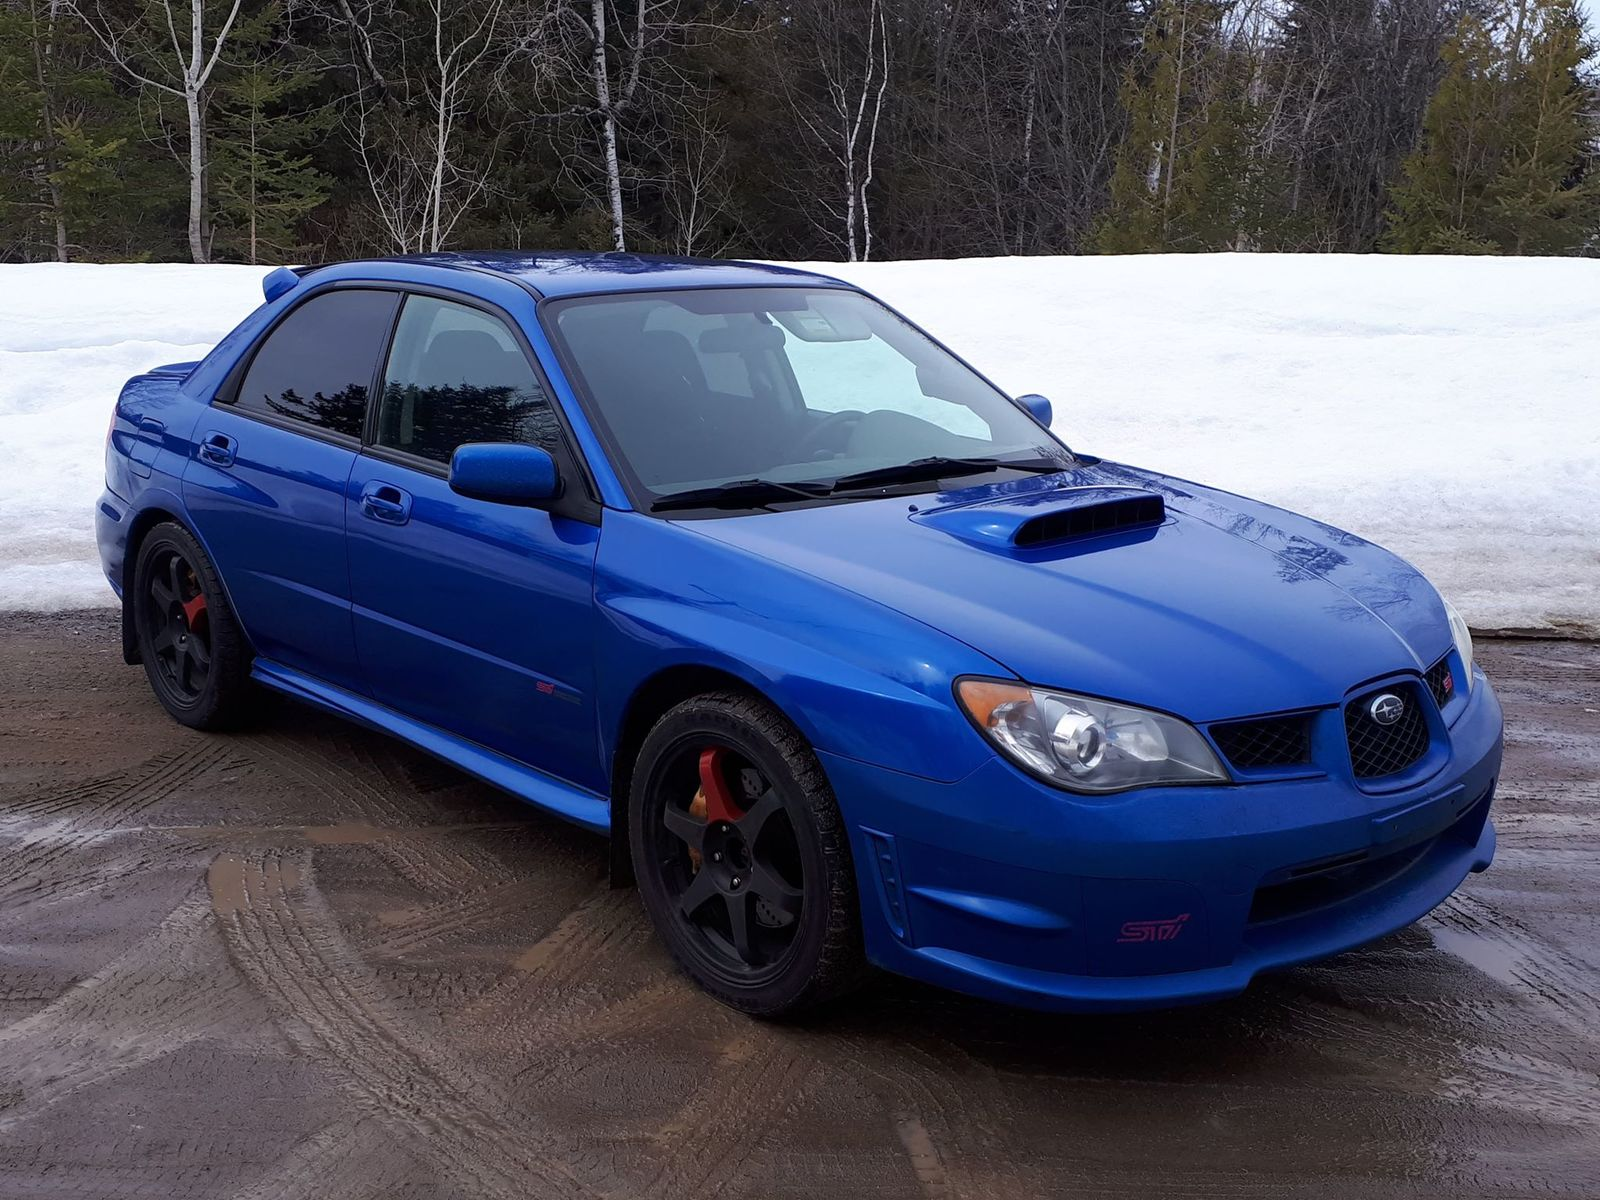 World Rallye Blue 2006 Subaru WRX STI